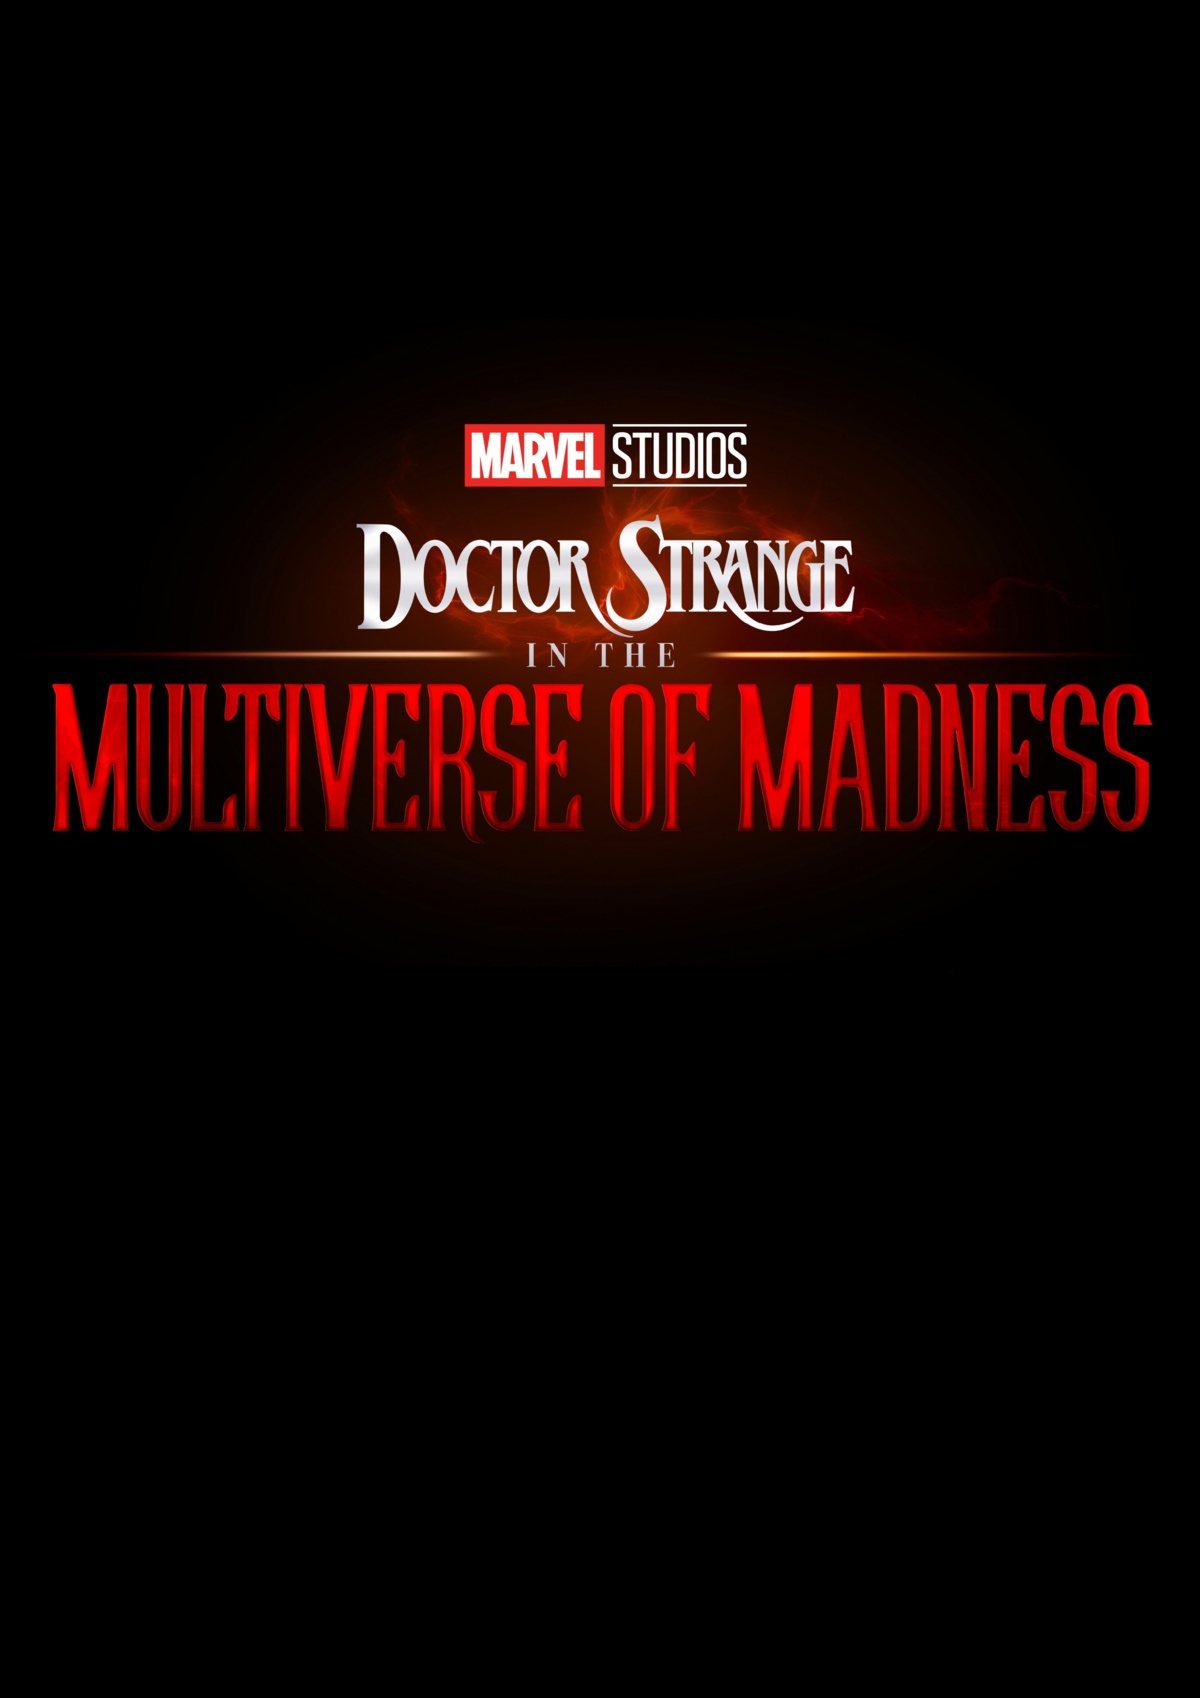 Doctor Strange in the Multiverse of Madness – Wikipedia